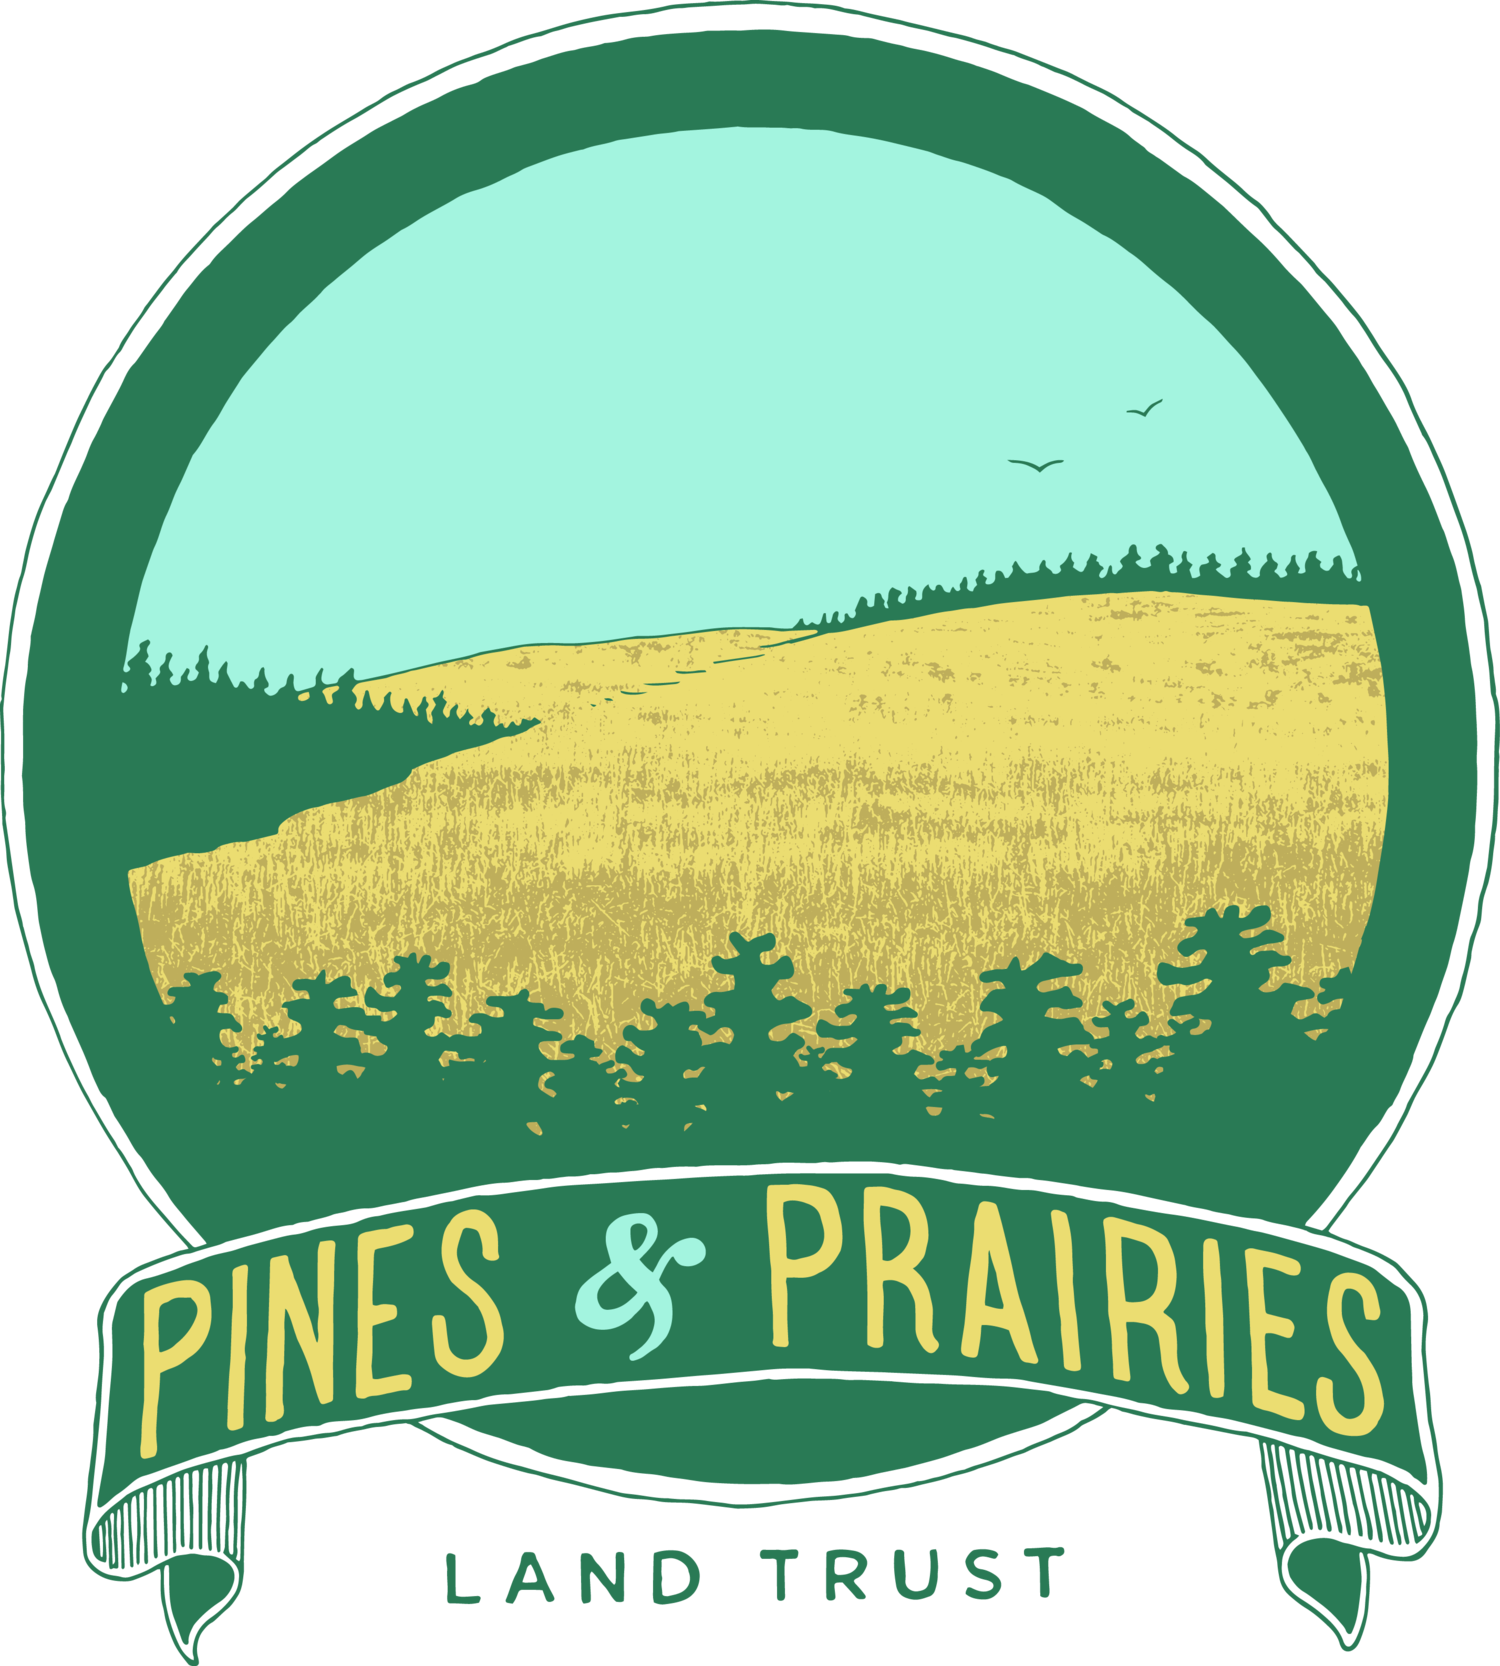 Pines & Prairies Land TrustHome